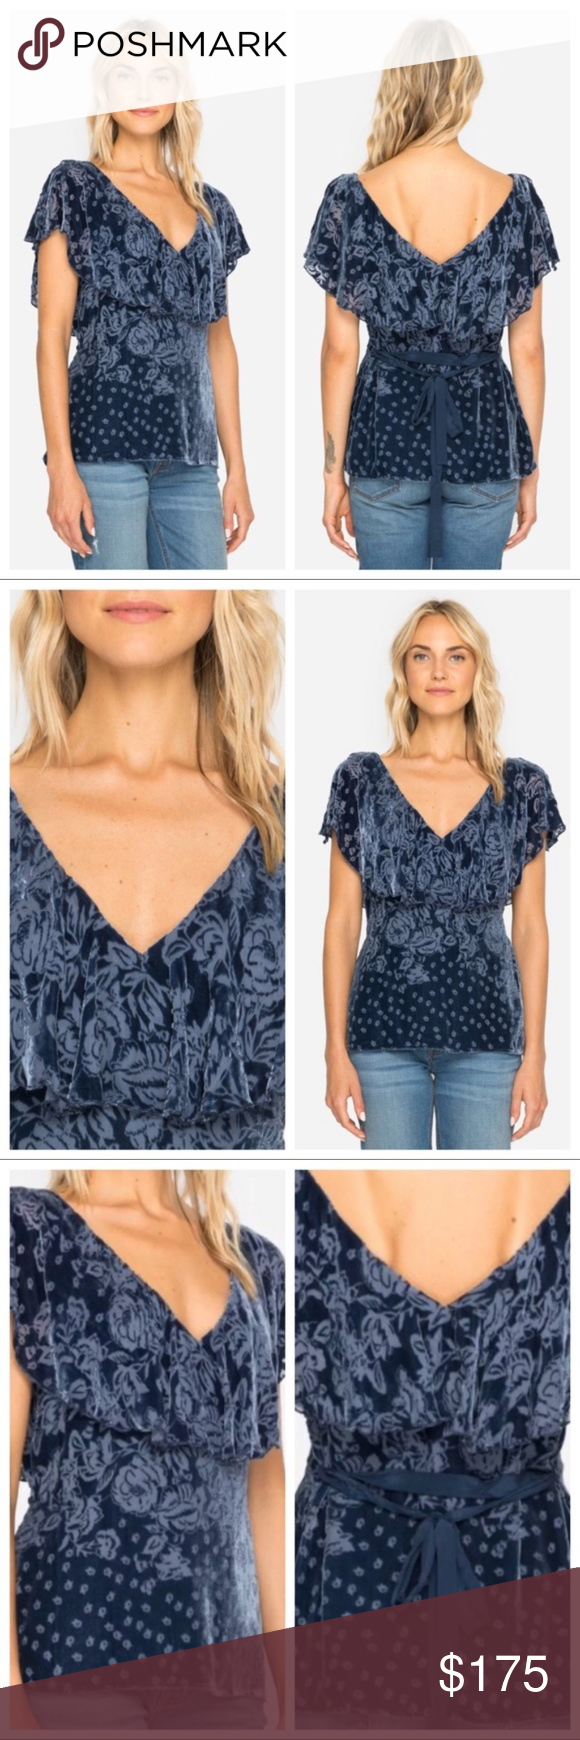 5a53c10e89f89 Johnny Was Floral Waves Belted Velvet V-Neck Top Brand new with tags still  attached Johnny Was Floral Waves Belted Velvet V-Neck Top.